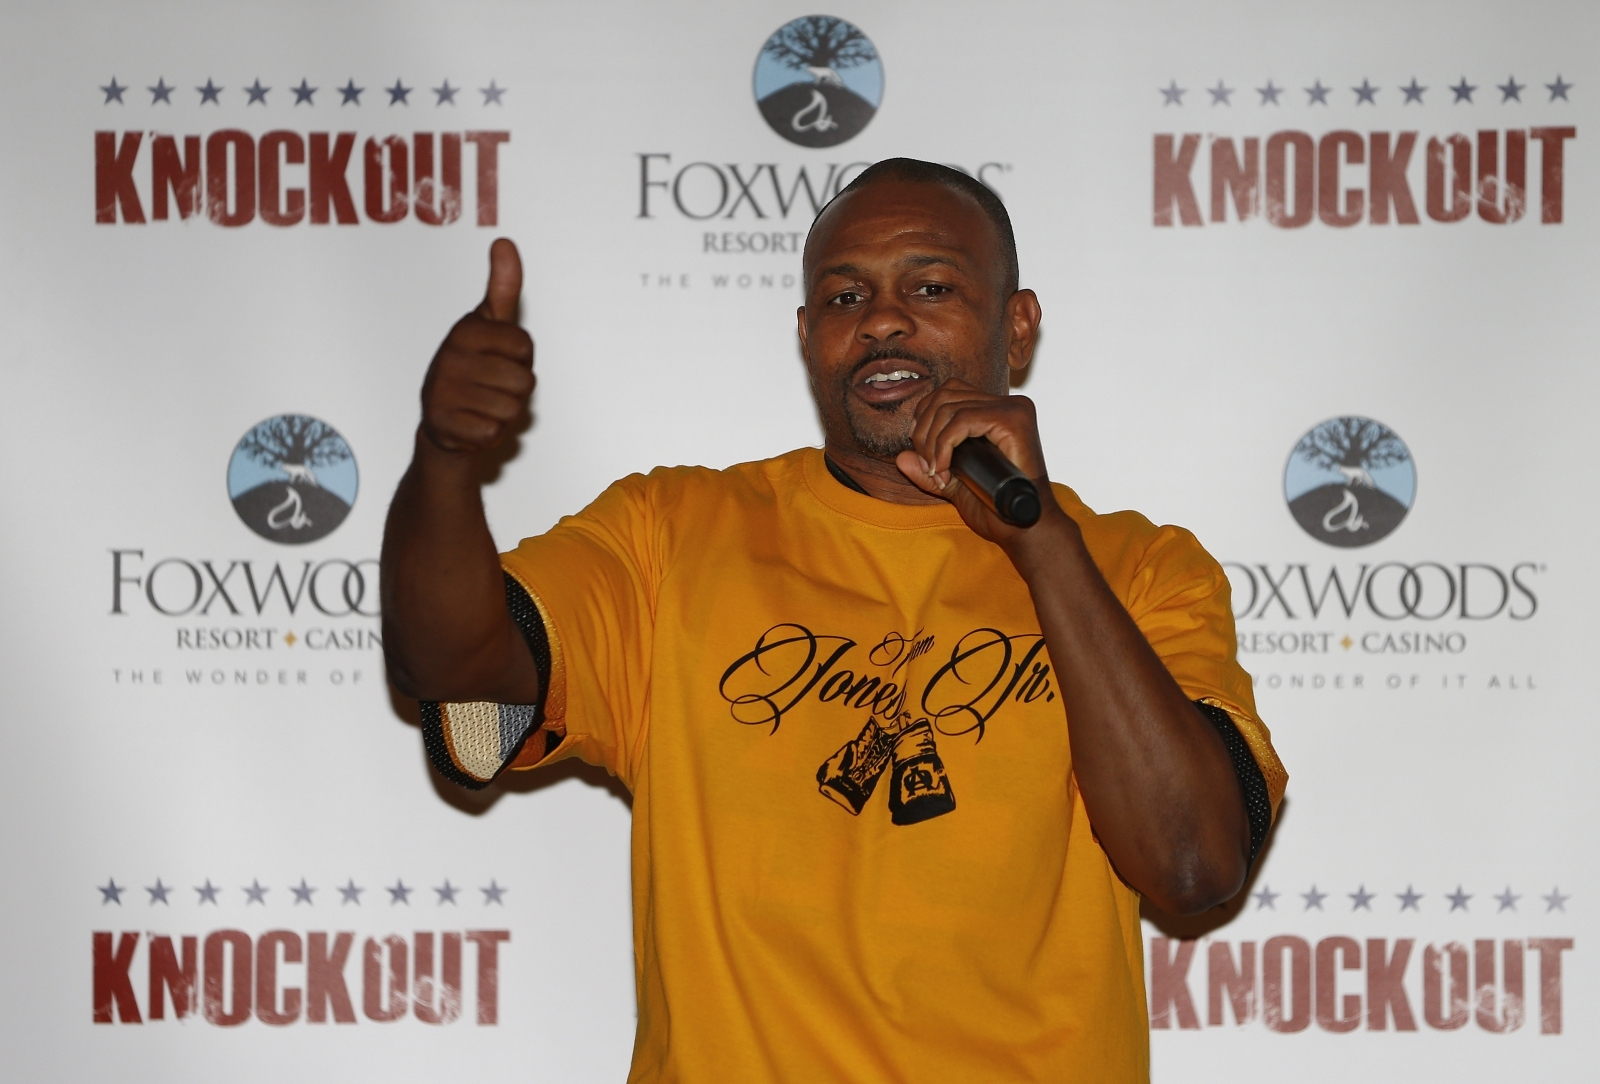 Roy Jones Jr retires but leaves door ajar for Anderson Silva bout